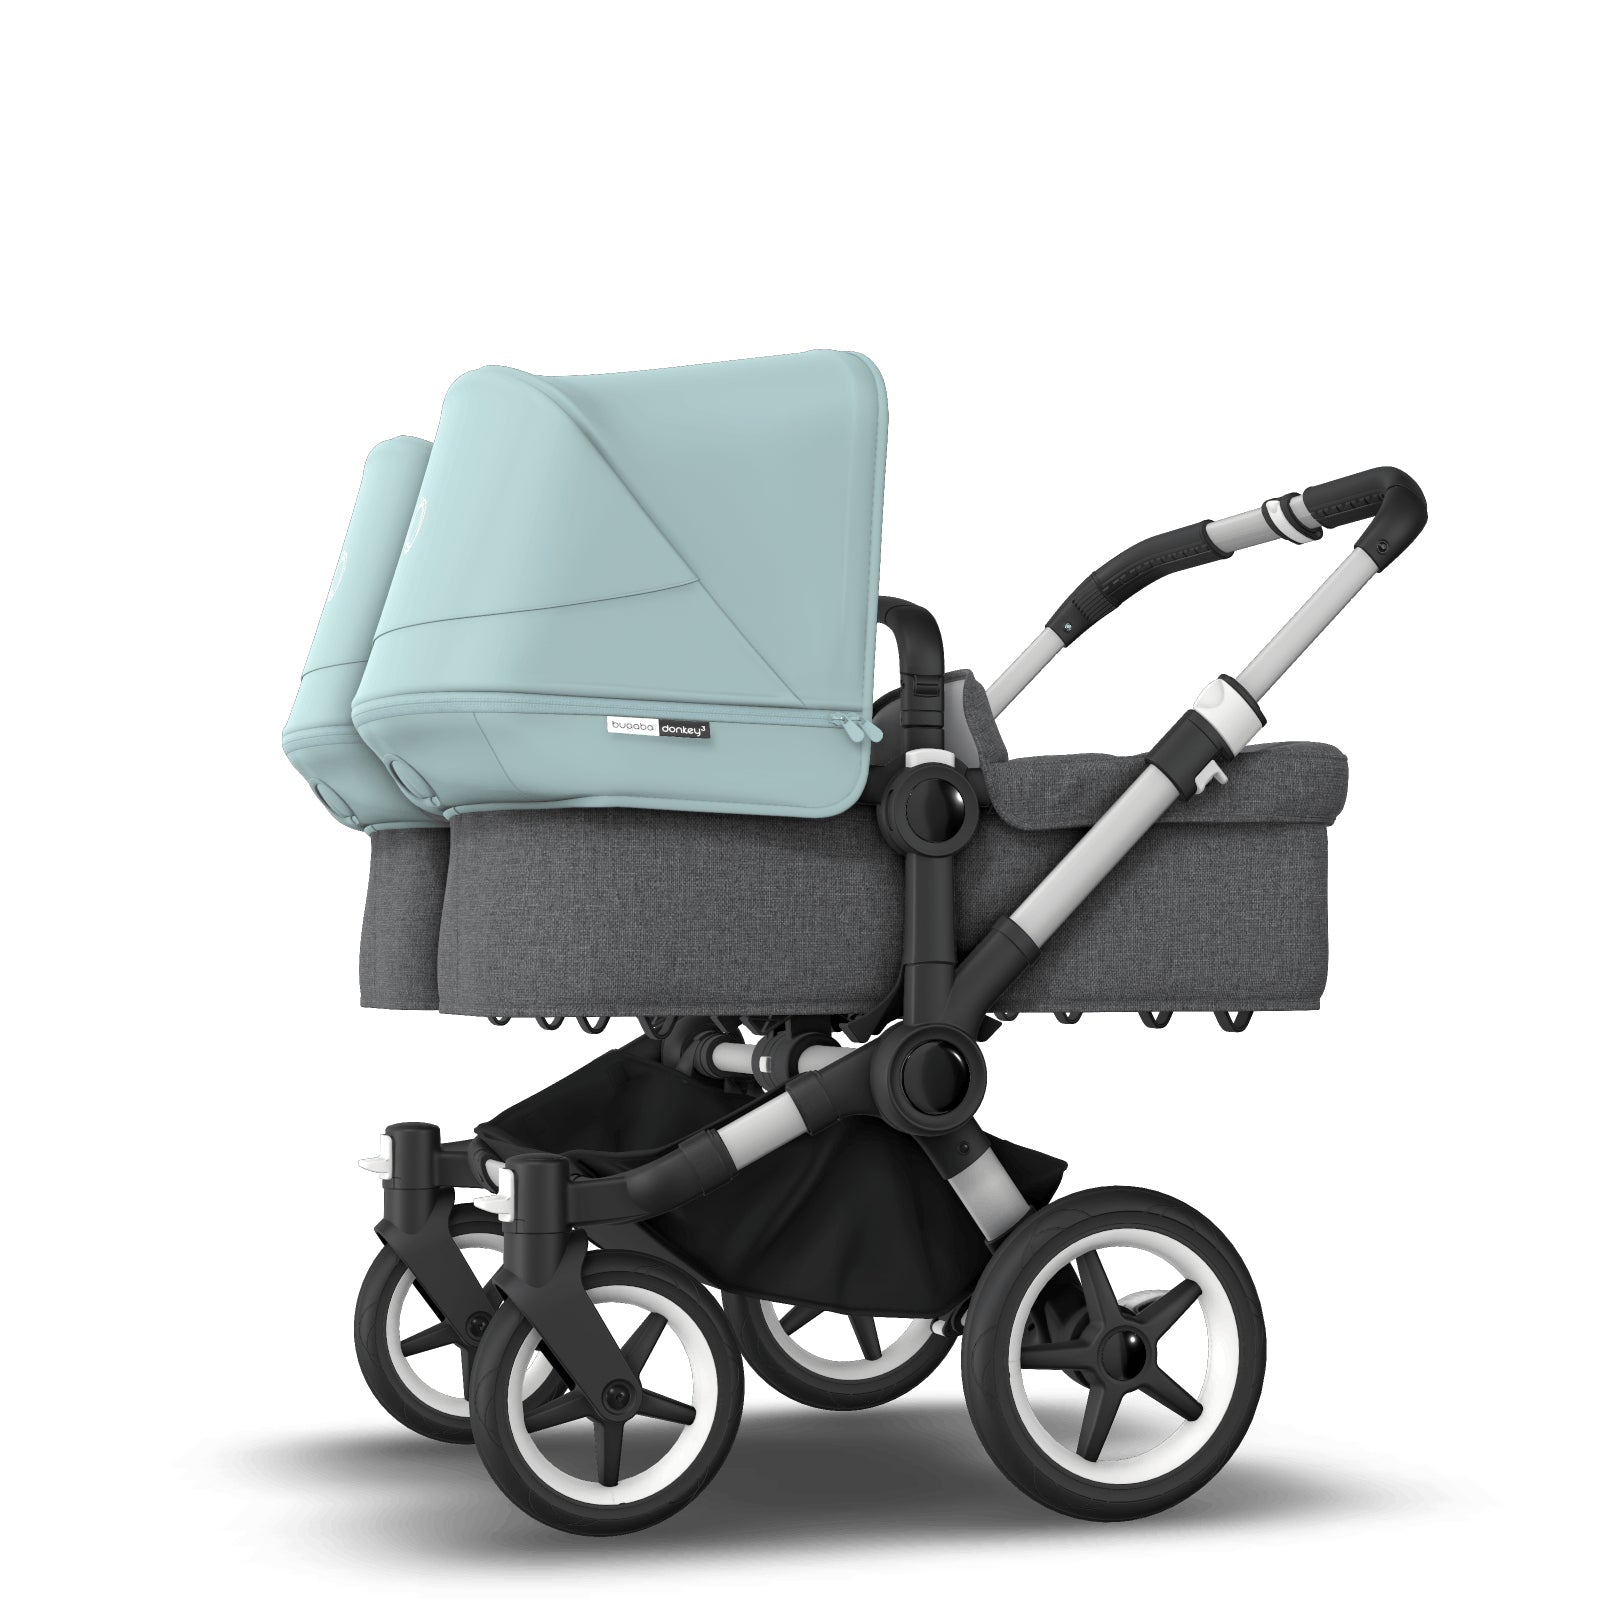 Bugaboo Donkey 3 Twin Seat and Carrycot Pushchair - Vapor Blue